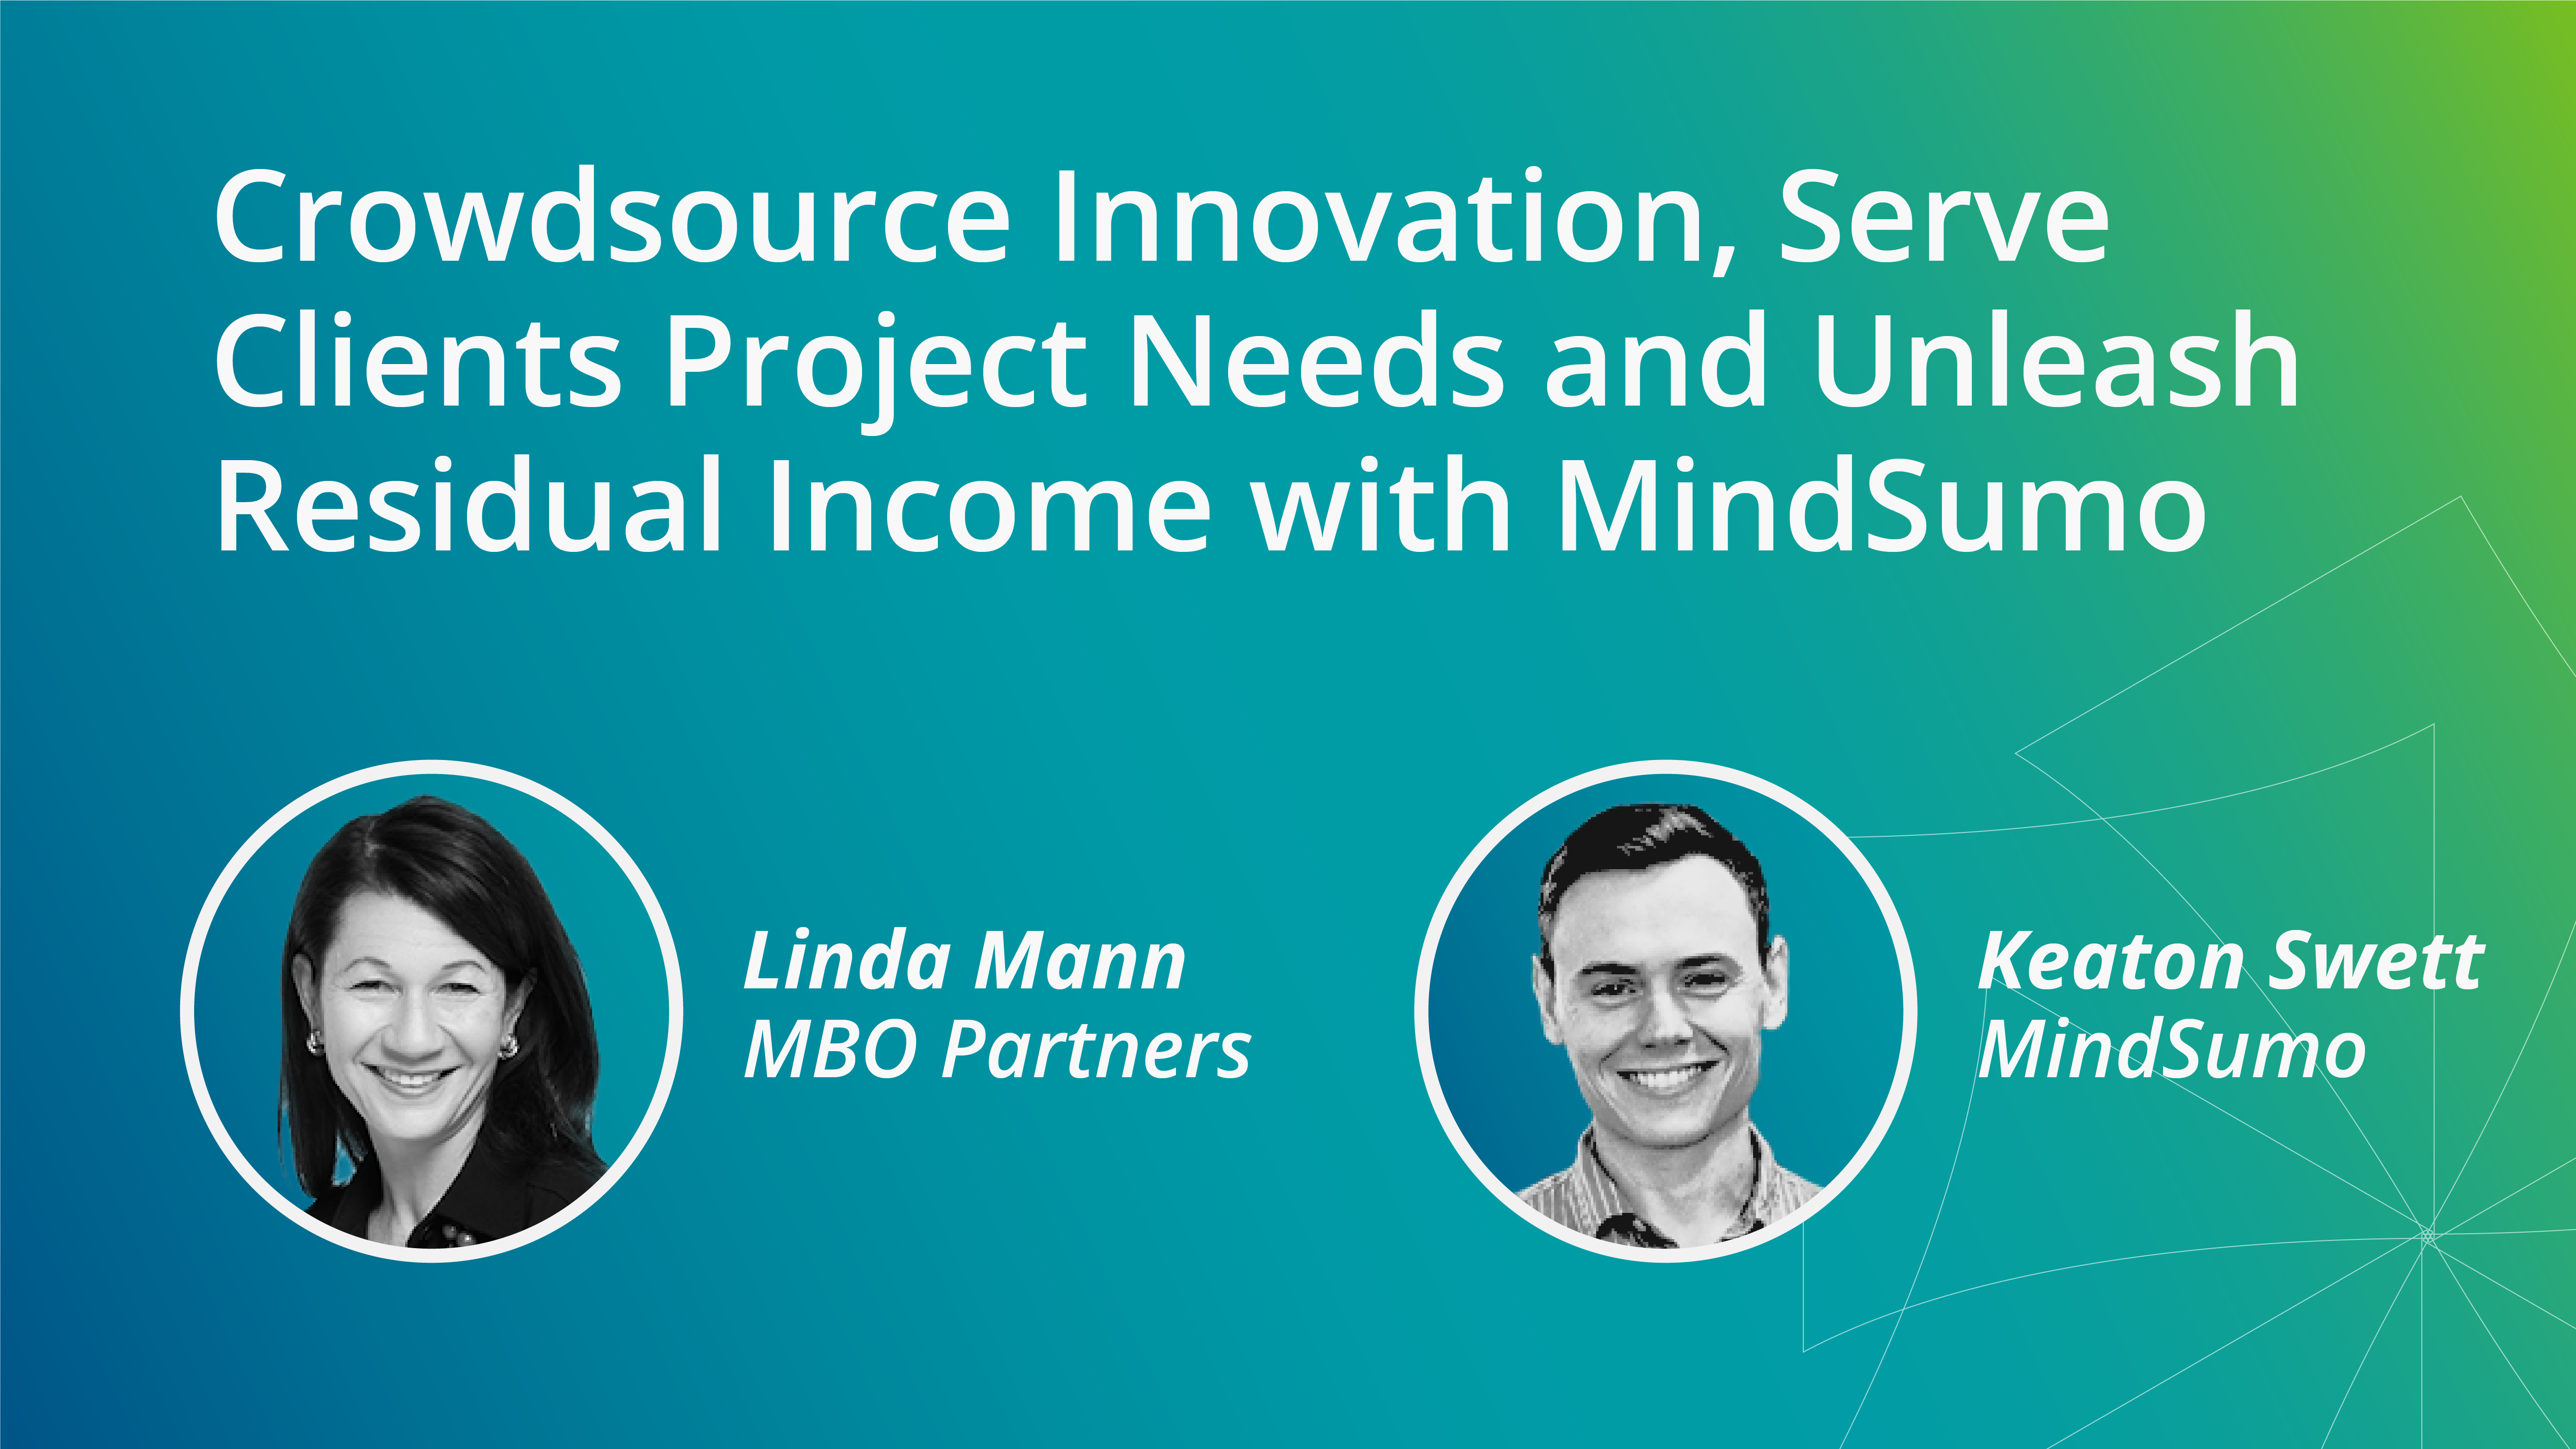 Crowdsource Innovation with MindSumo